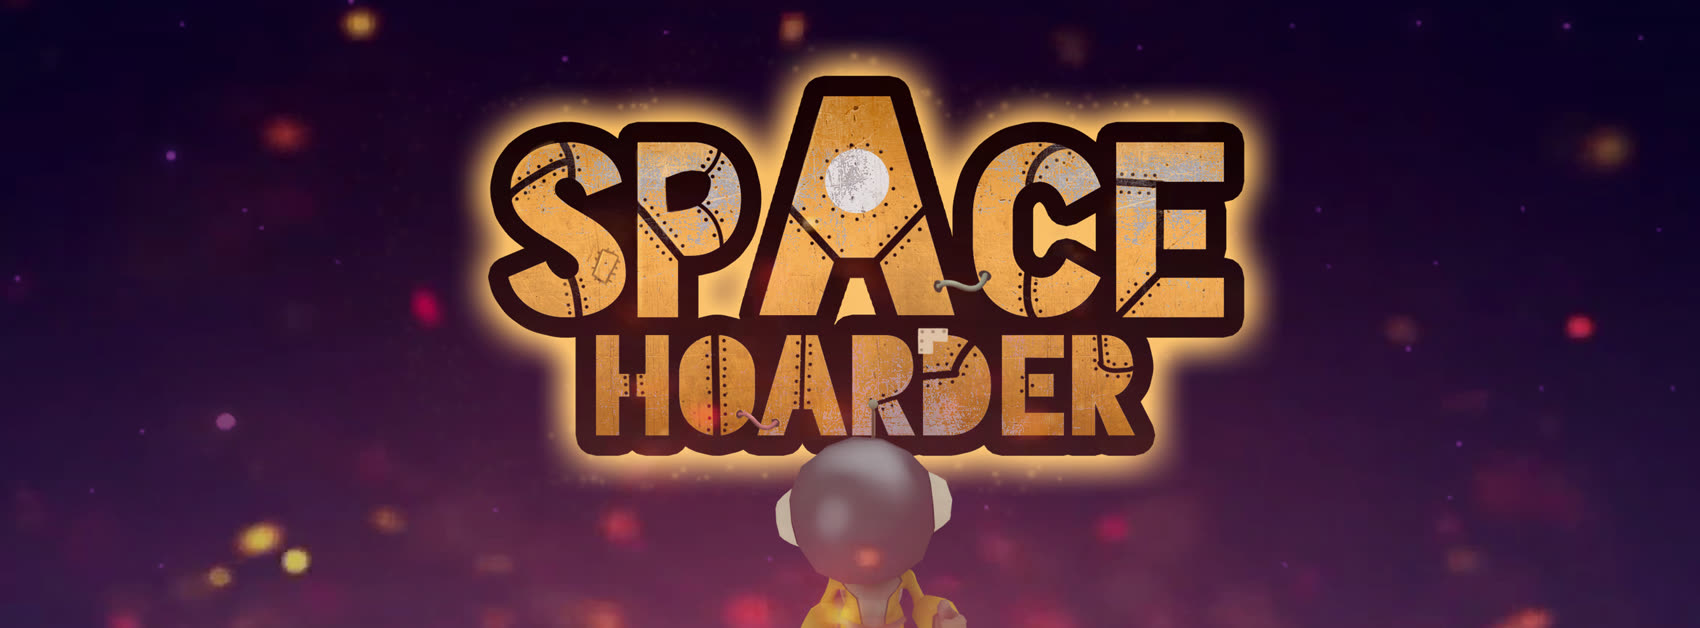 Space Hoarder